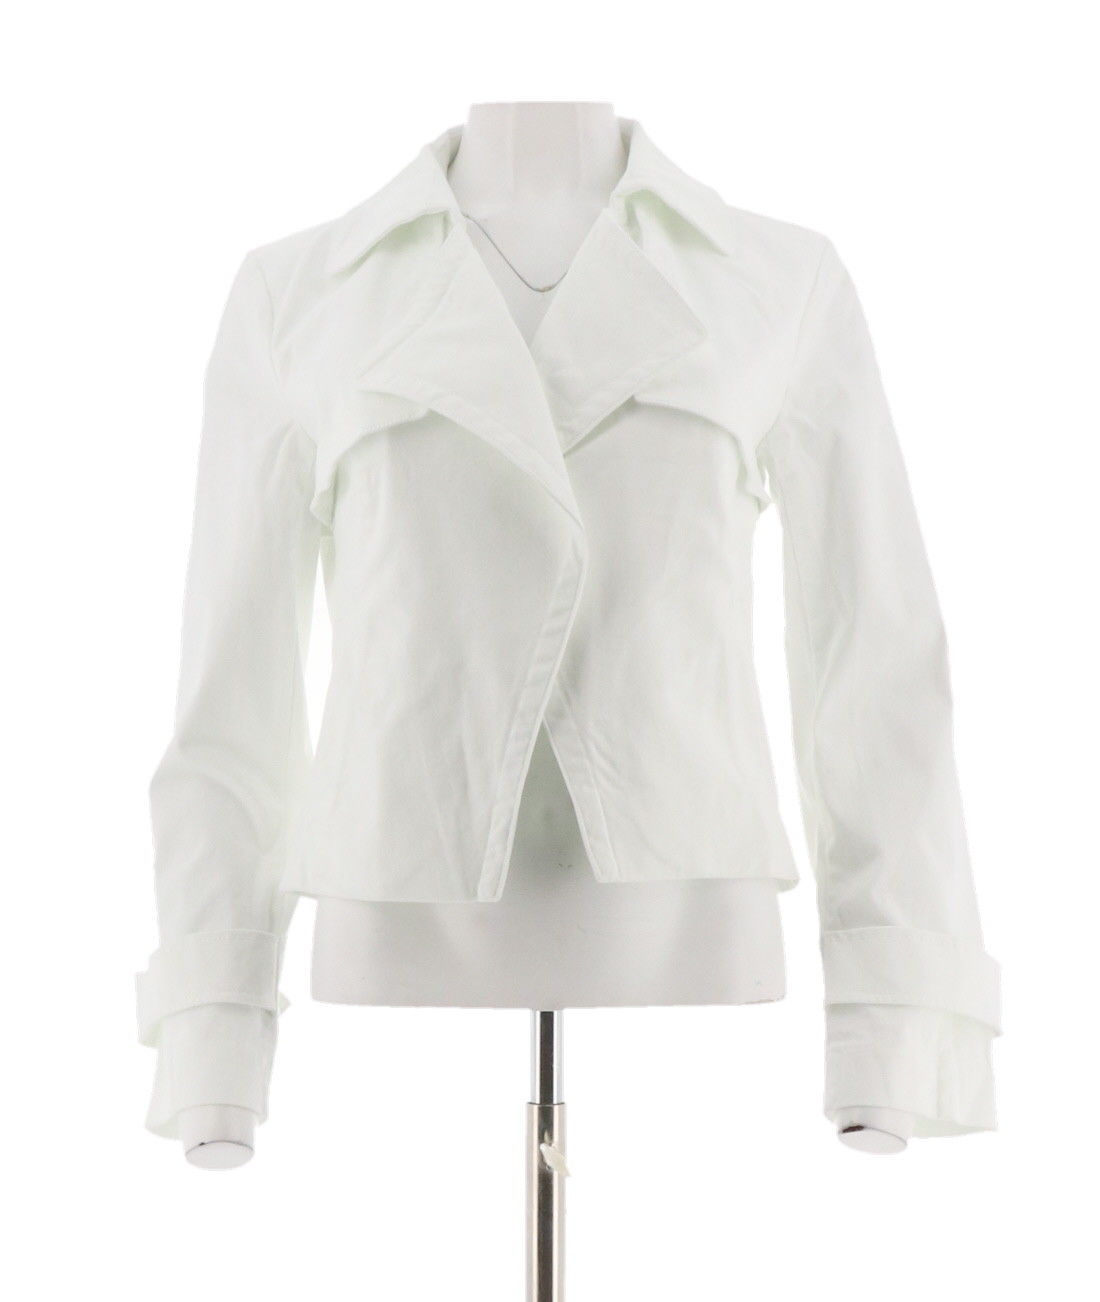 Du Jour Open Front Cropped Jacket Pockets White XL NEW A303287